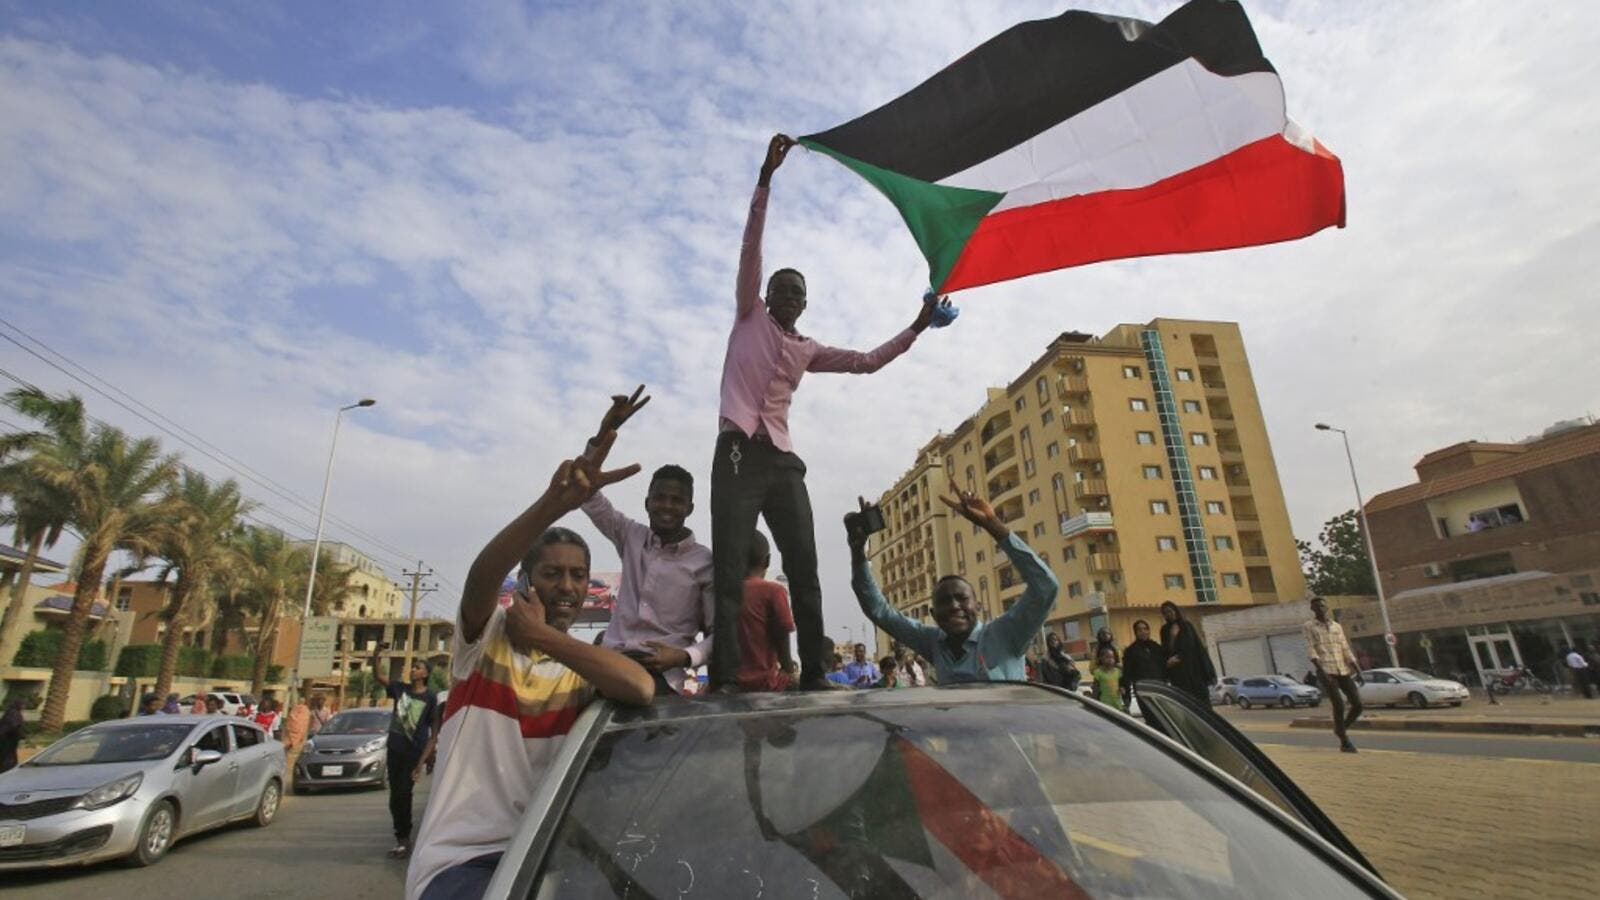 Sudanese protesters wave their national flag during a demonstration called for by the Sudanese Professionals Association (SPA) to denounce the July 29 Al-Obeid killings, in the capital Khartoum on August 1, 2019. (AFP/ File Photo)